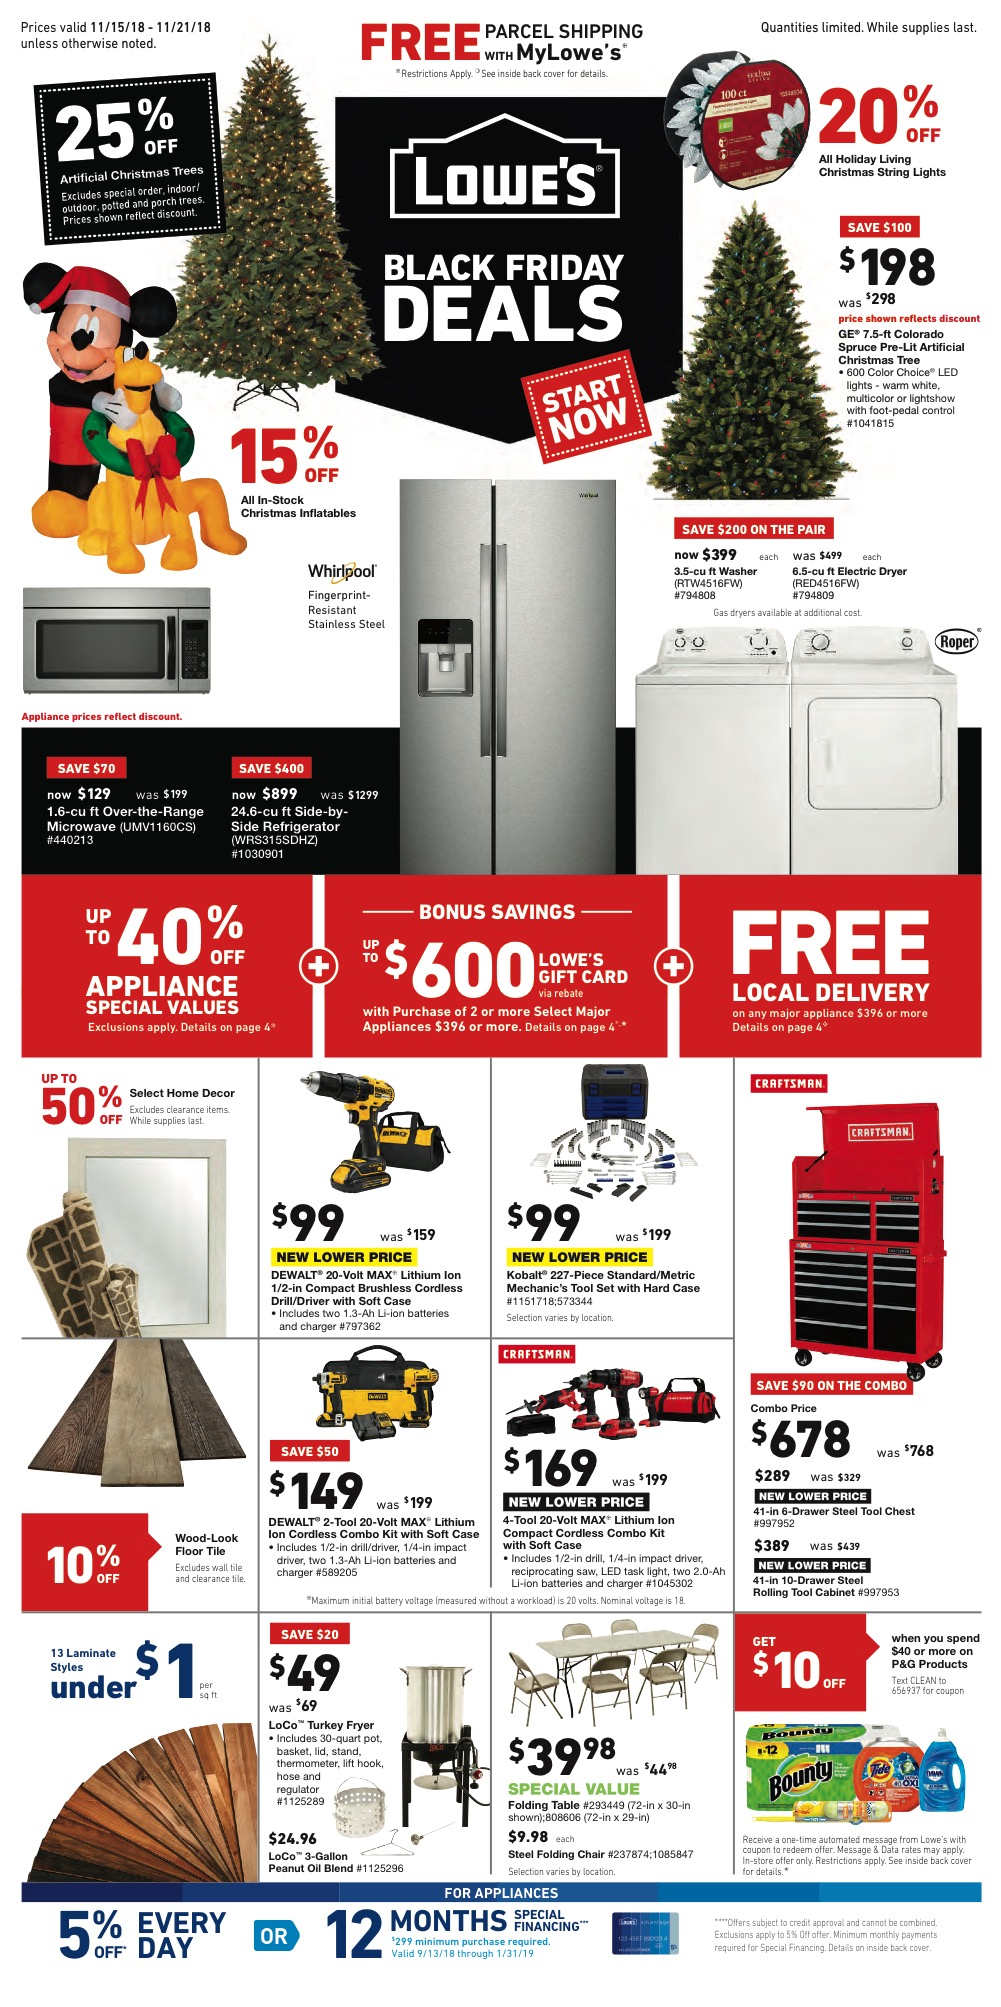 Lowes Pre-Black Friday Ad 2018 - Page 1